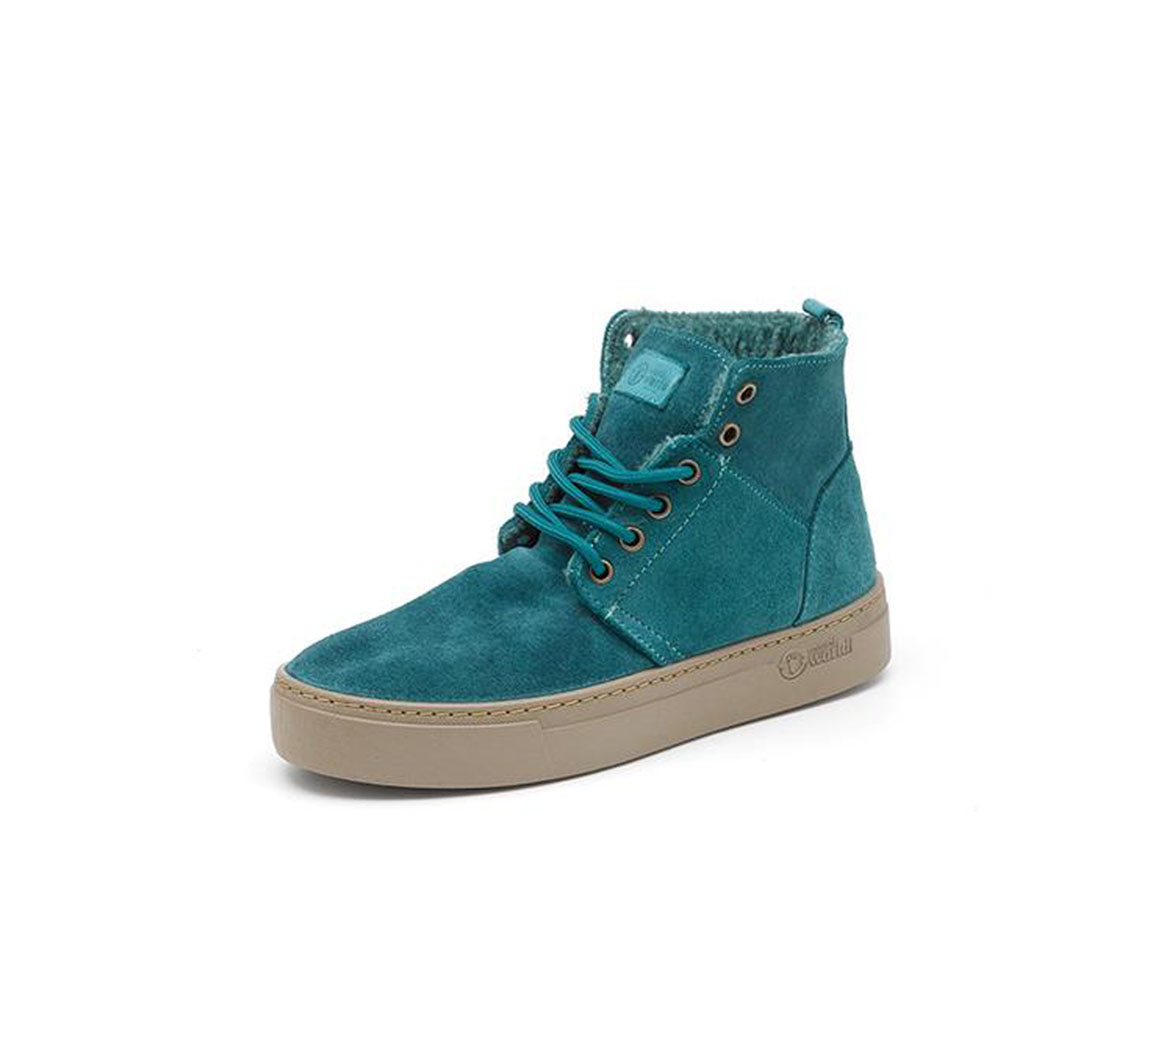 Chaussure femme Bota Eco Suede Wool